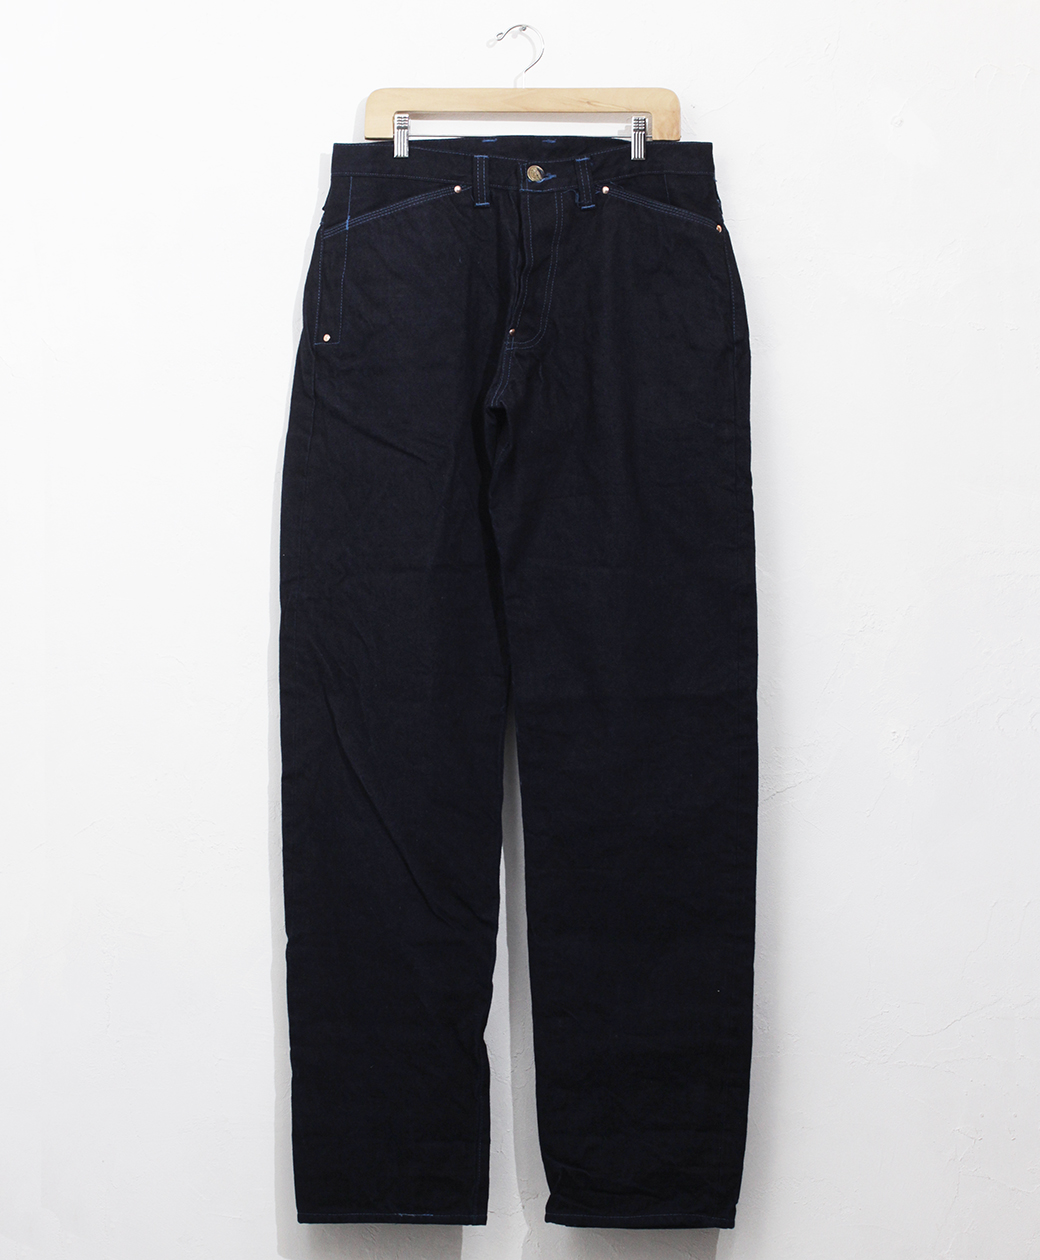 TENDER Co. 【10TH Anniversary LIMITED EDTION】TYPE 132 WIDE JEANS WITH PEN POCKETS WOAD